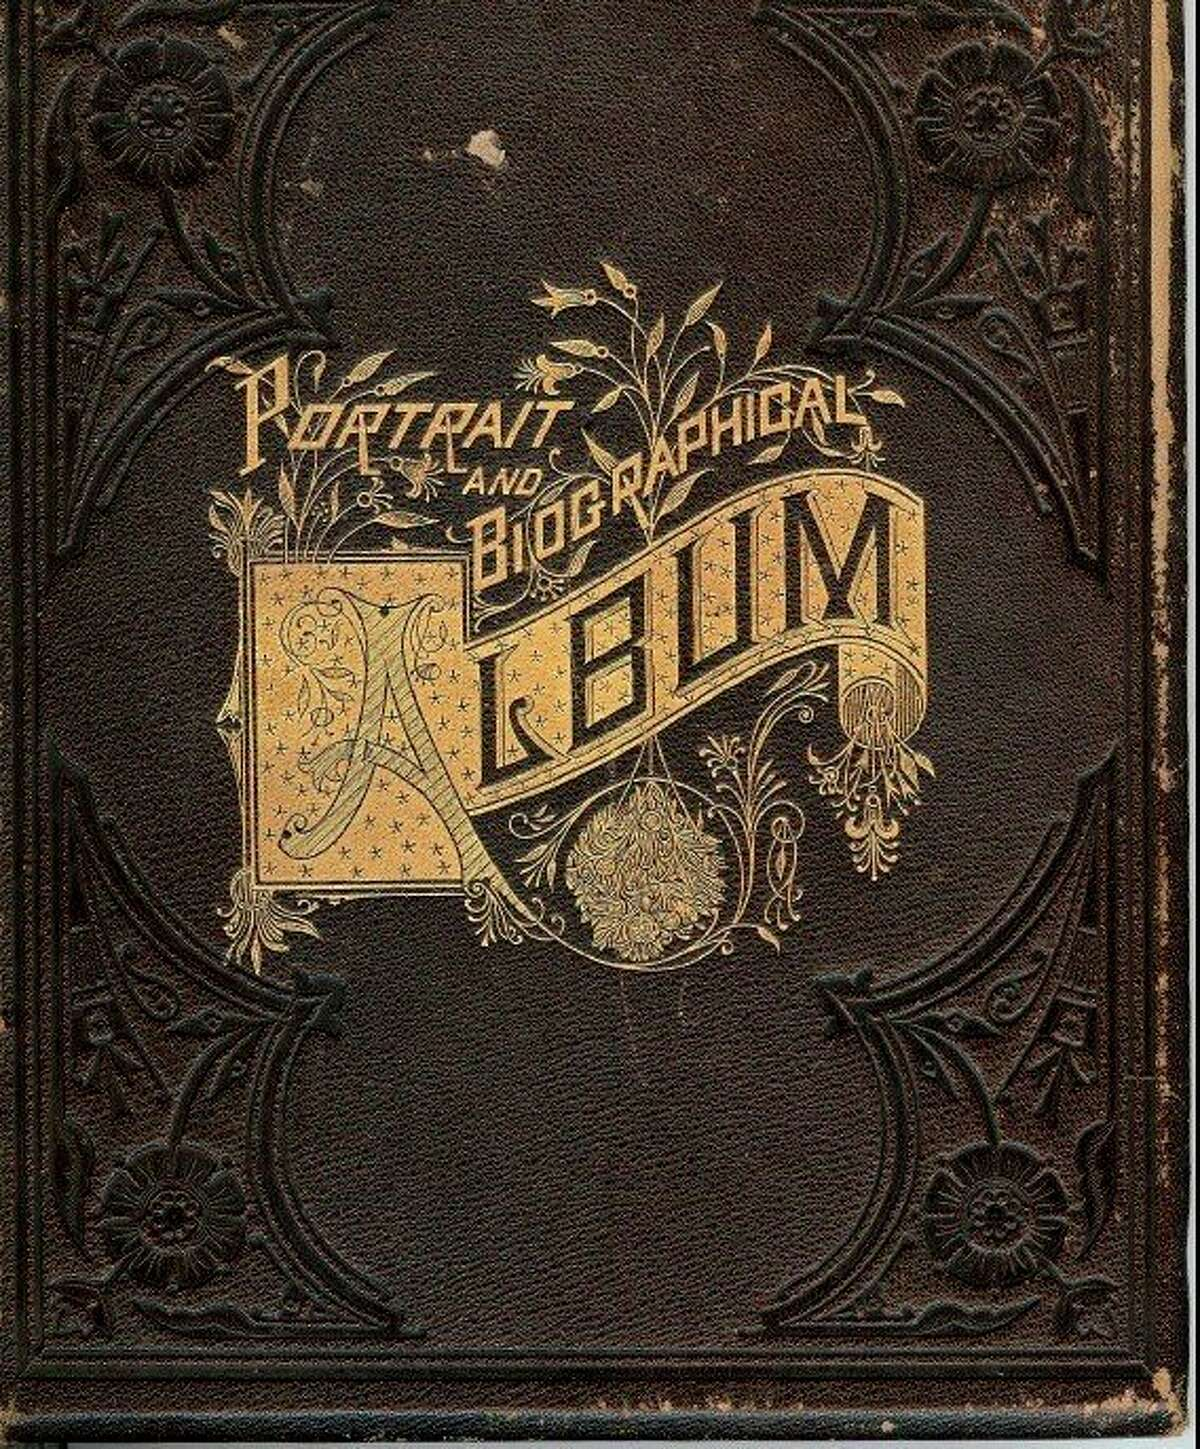 The 1884 Portrait and Biographical Album (Midland County Historical Society)